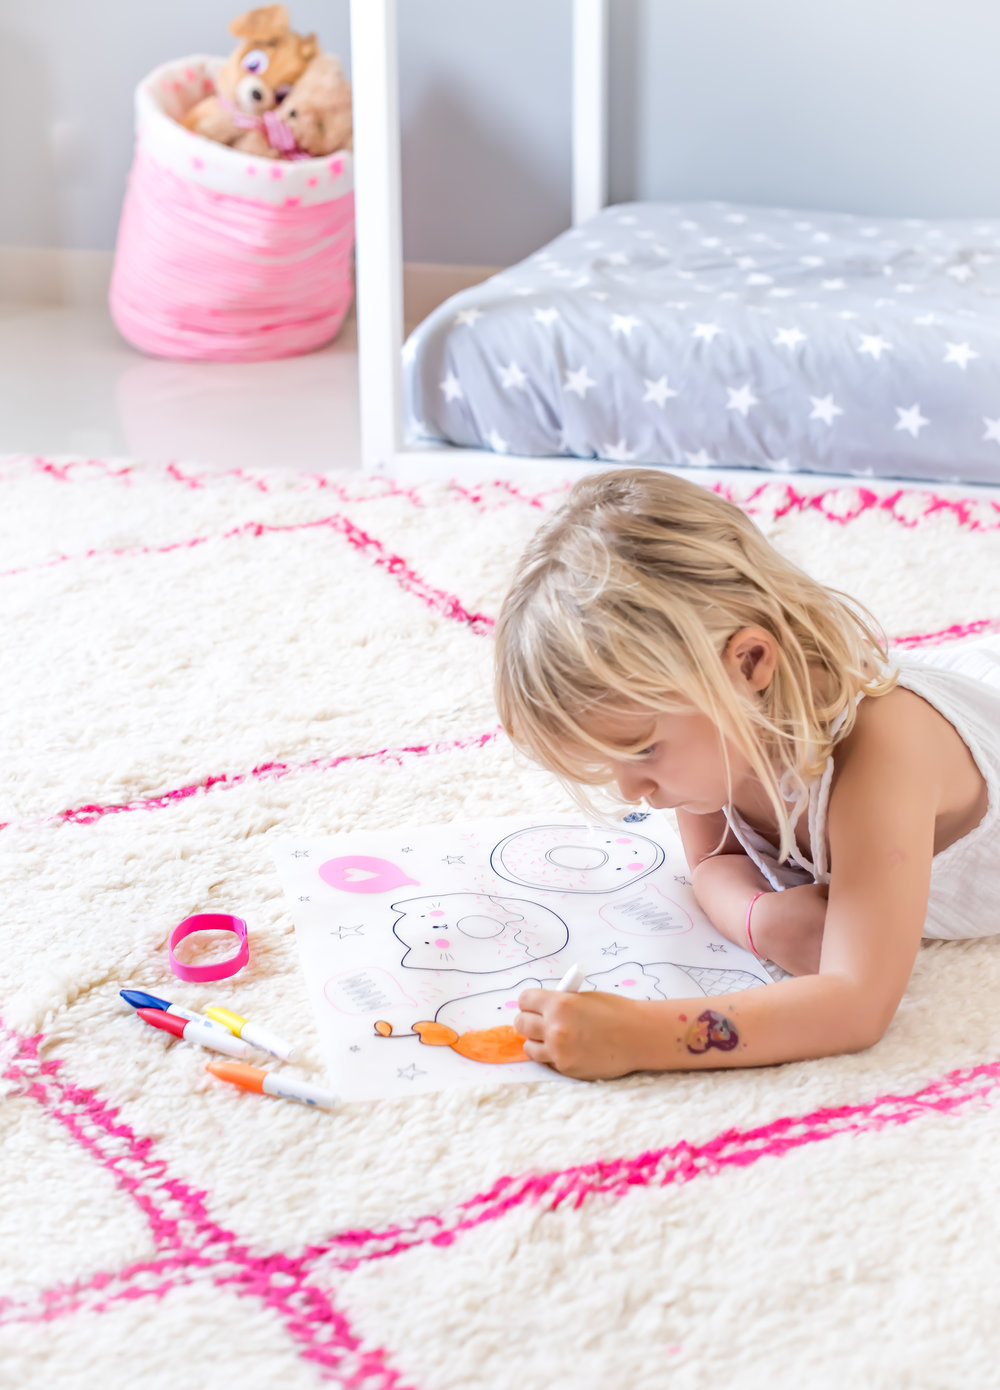 Stella in deep concentration with her colouring placemat... photo credit: Karen Pissarra @designk